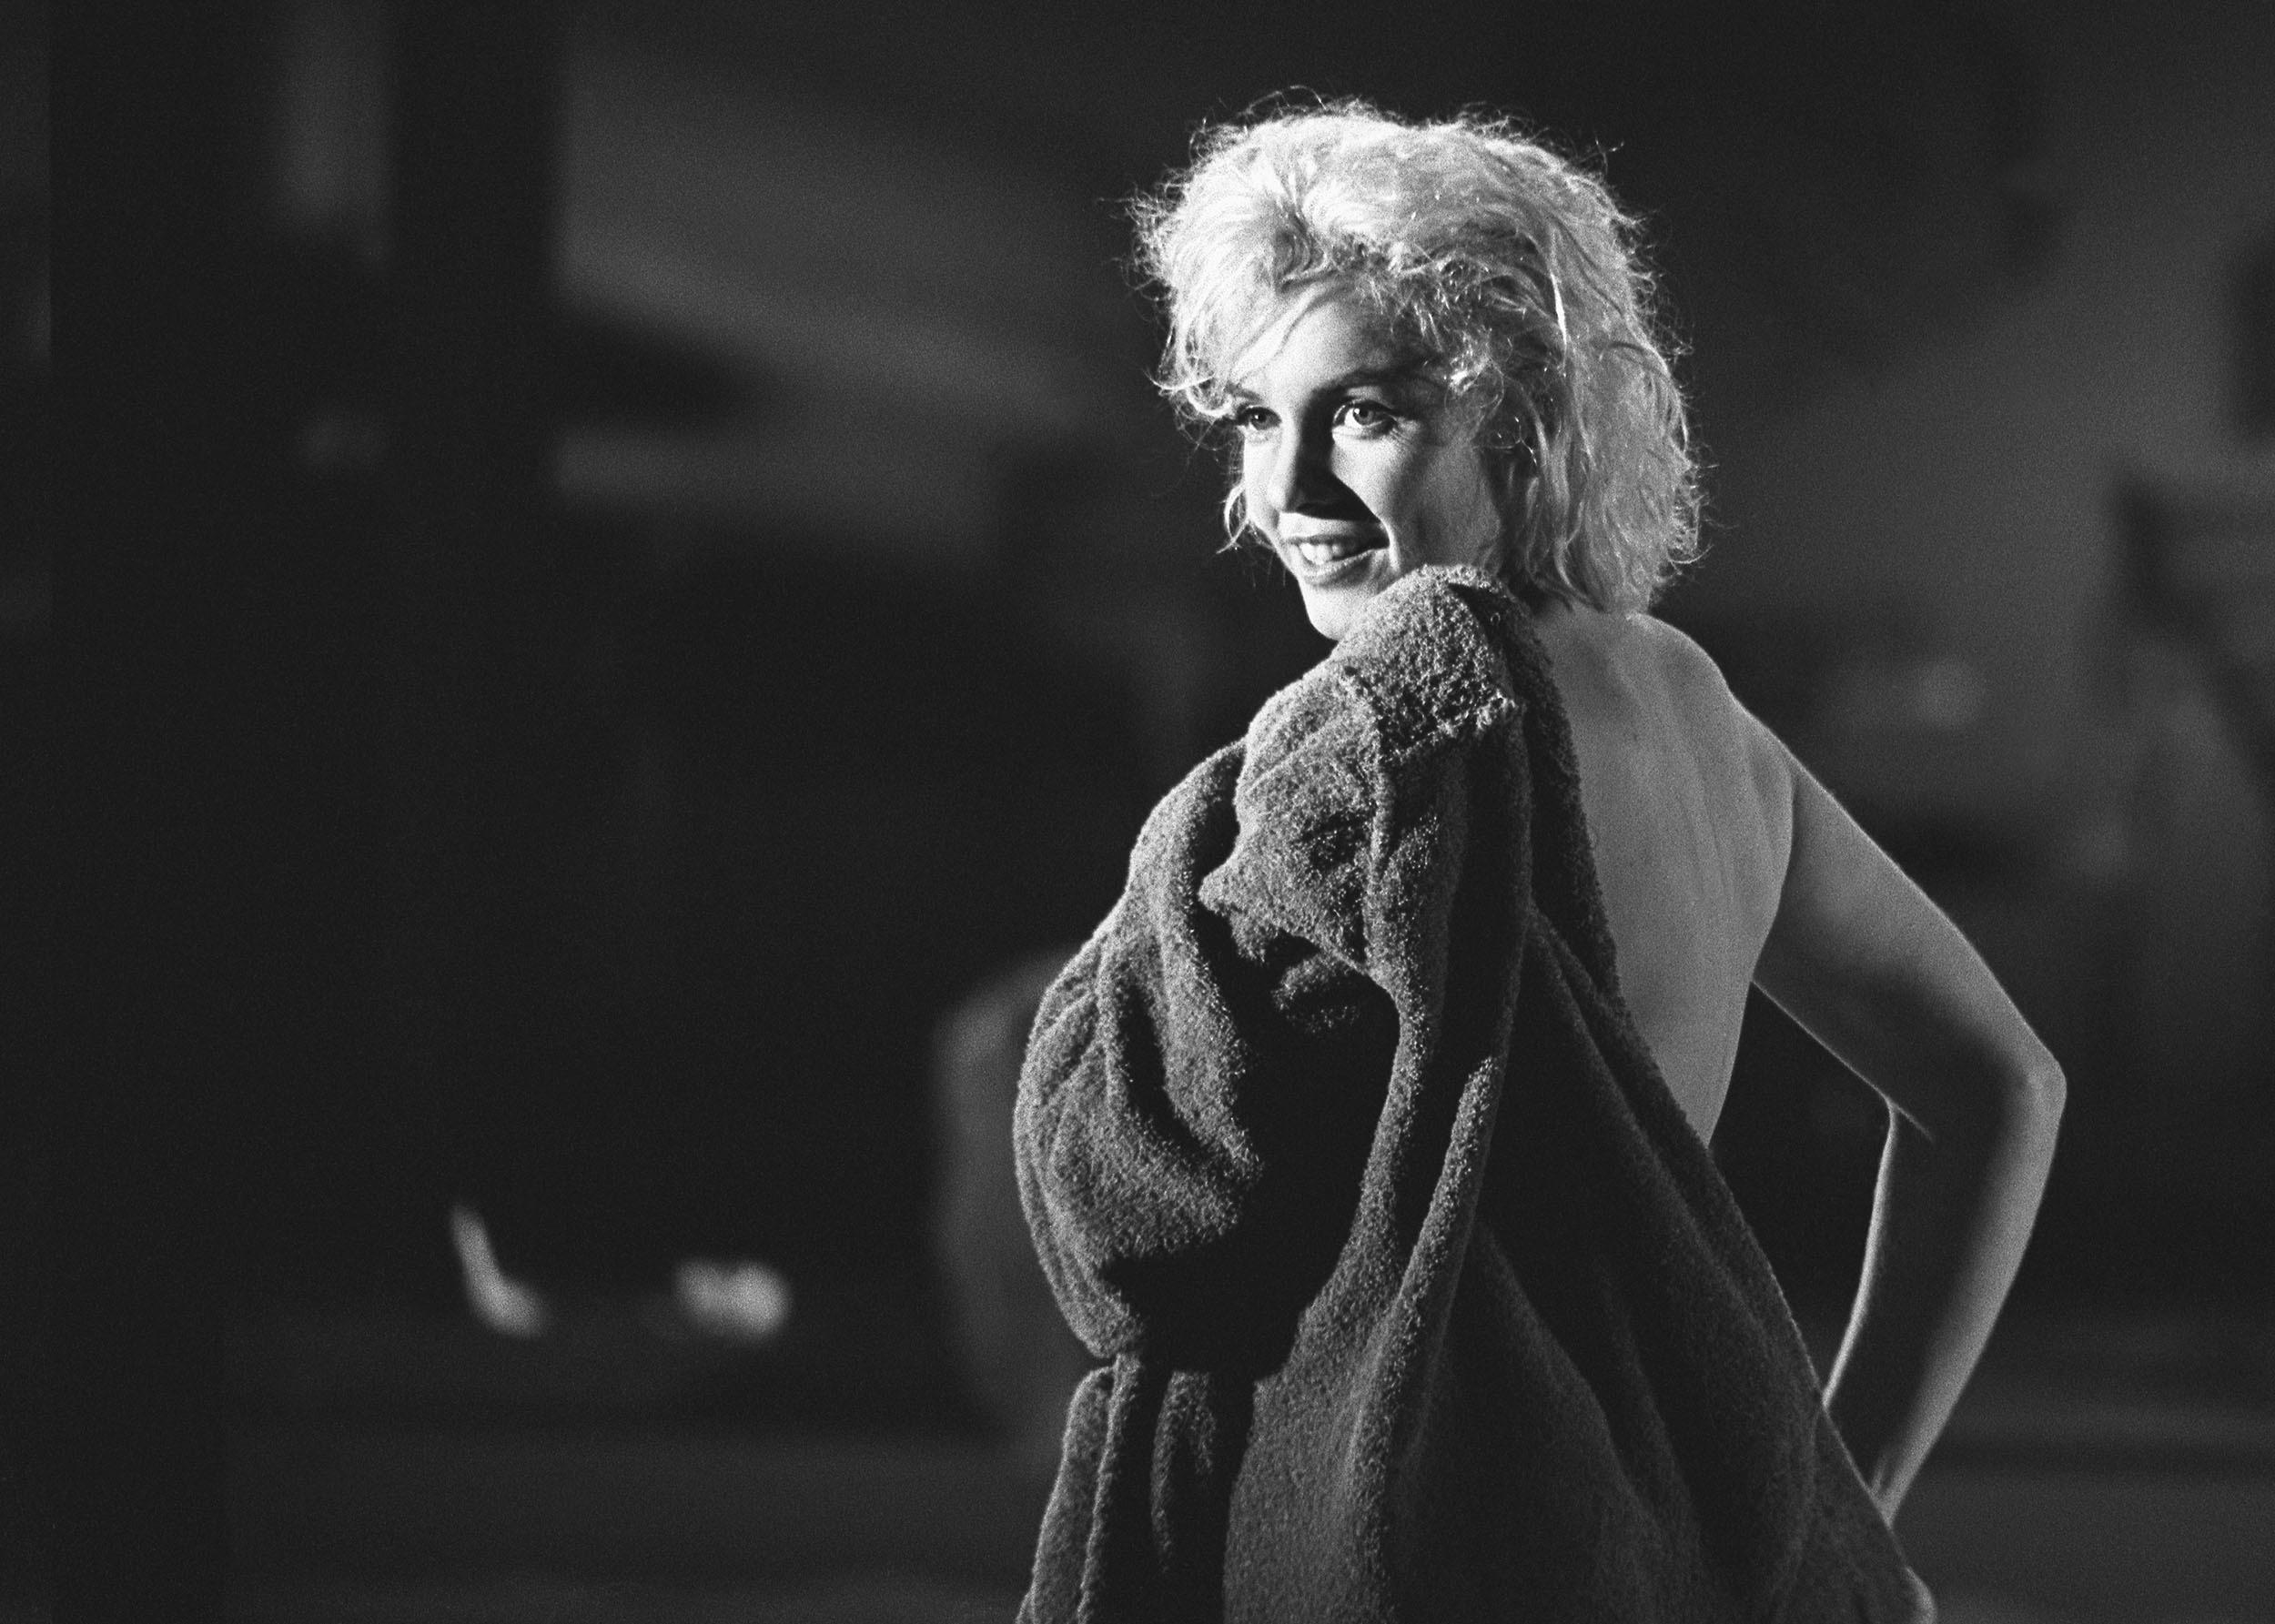 Marilyn Monroe Photograph Putting on a Robe, 24/75